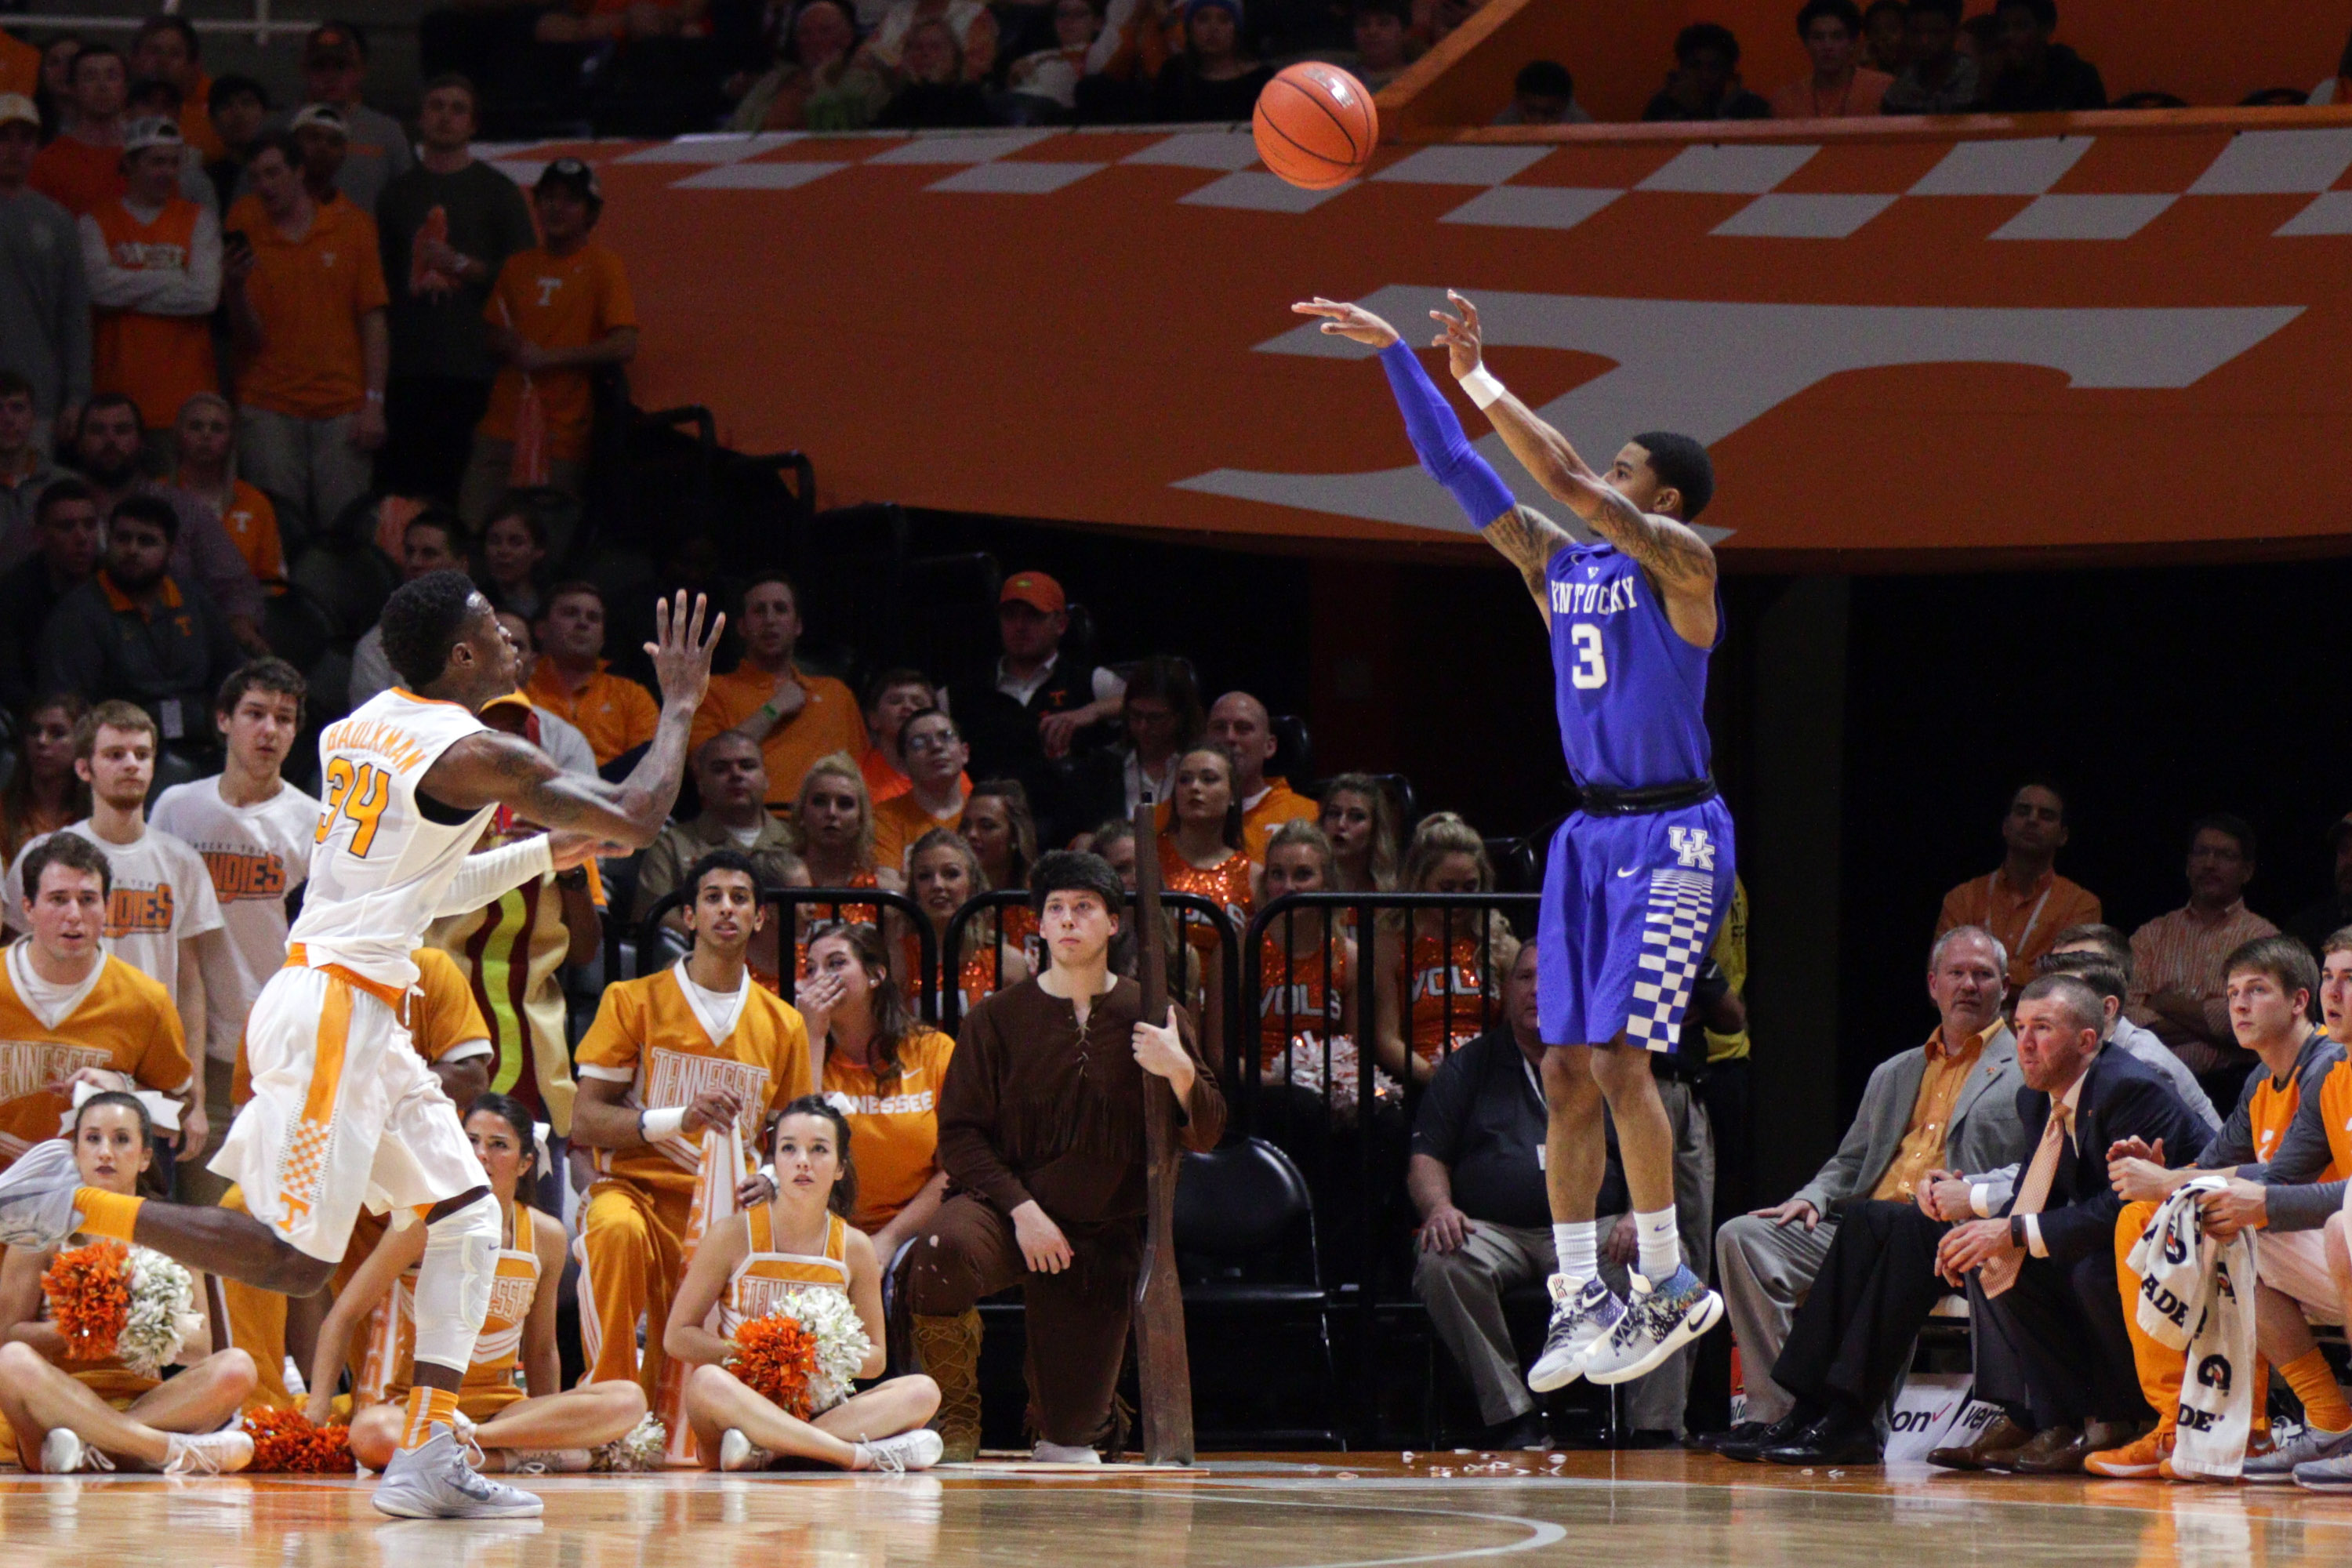 Briscoe, Monk lead No. 15 Kentucky past Alabama, 67-58